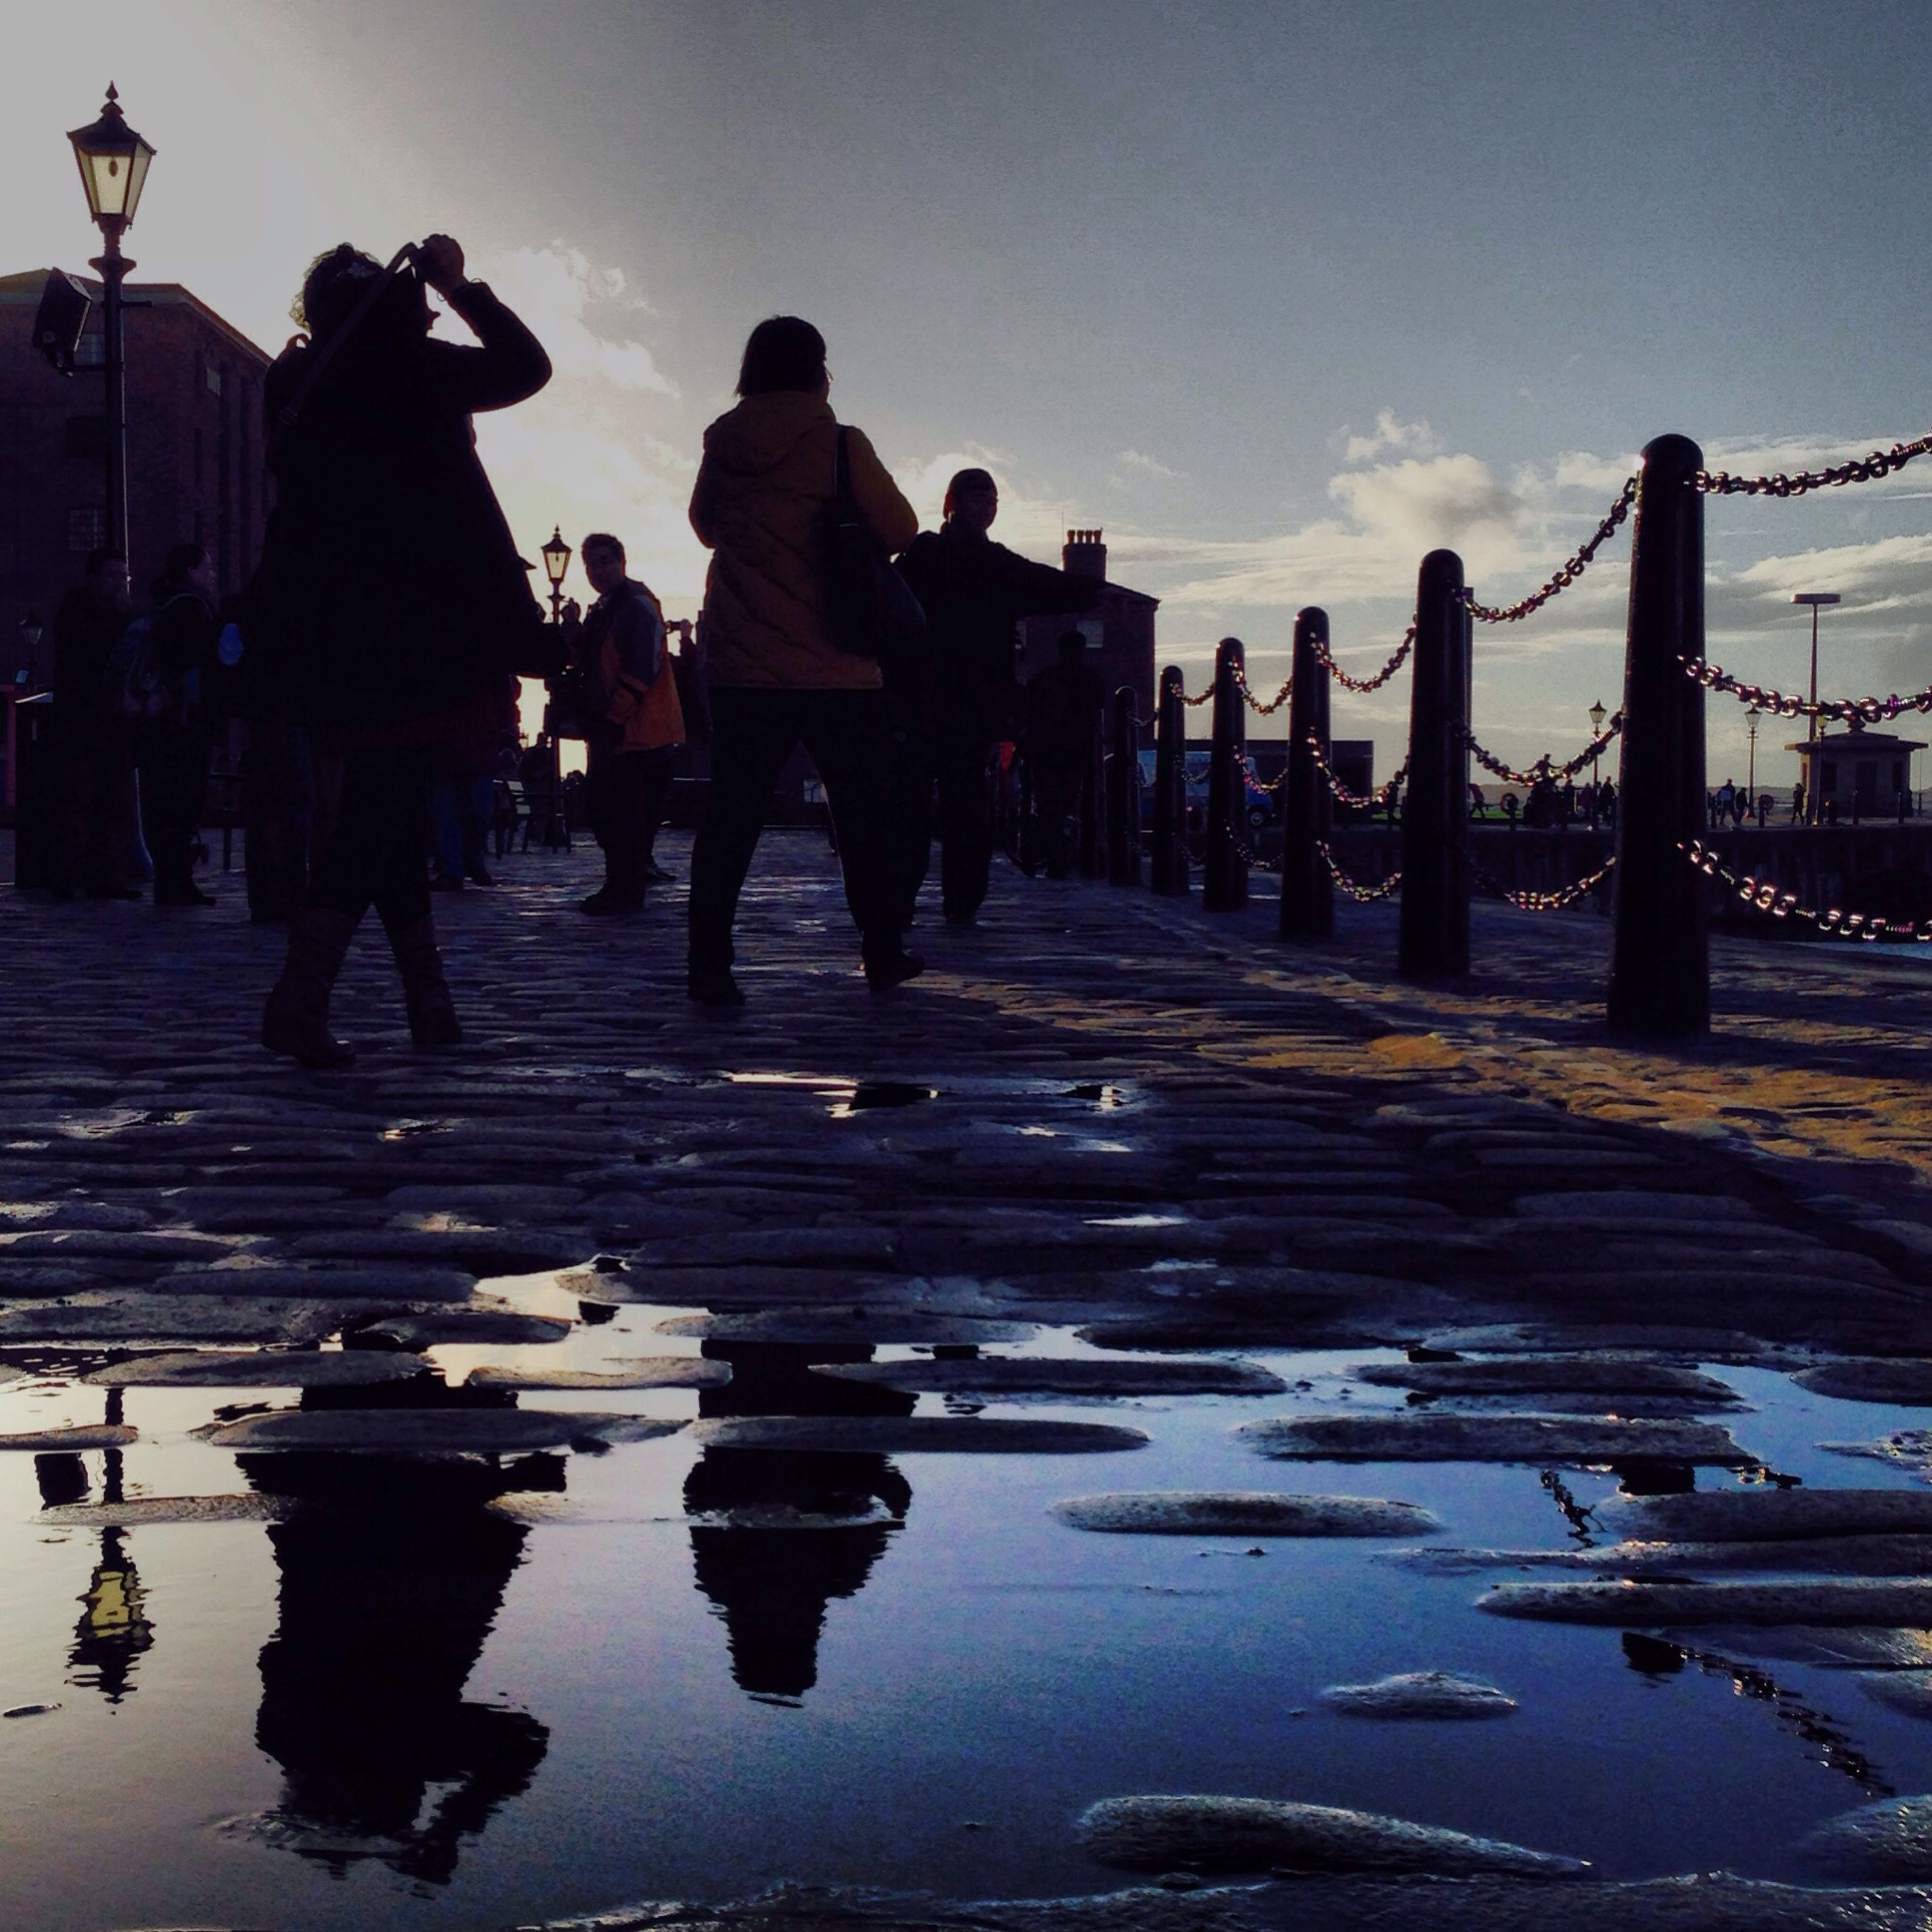 water, sky, reflection, men, large group of people, lifestyles, walking, person, built structure, silhouette, leisure activity, incidental people, architecture, sea, wet, beach, medium group of people, building exterior, waterfront